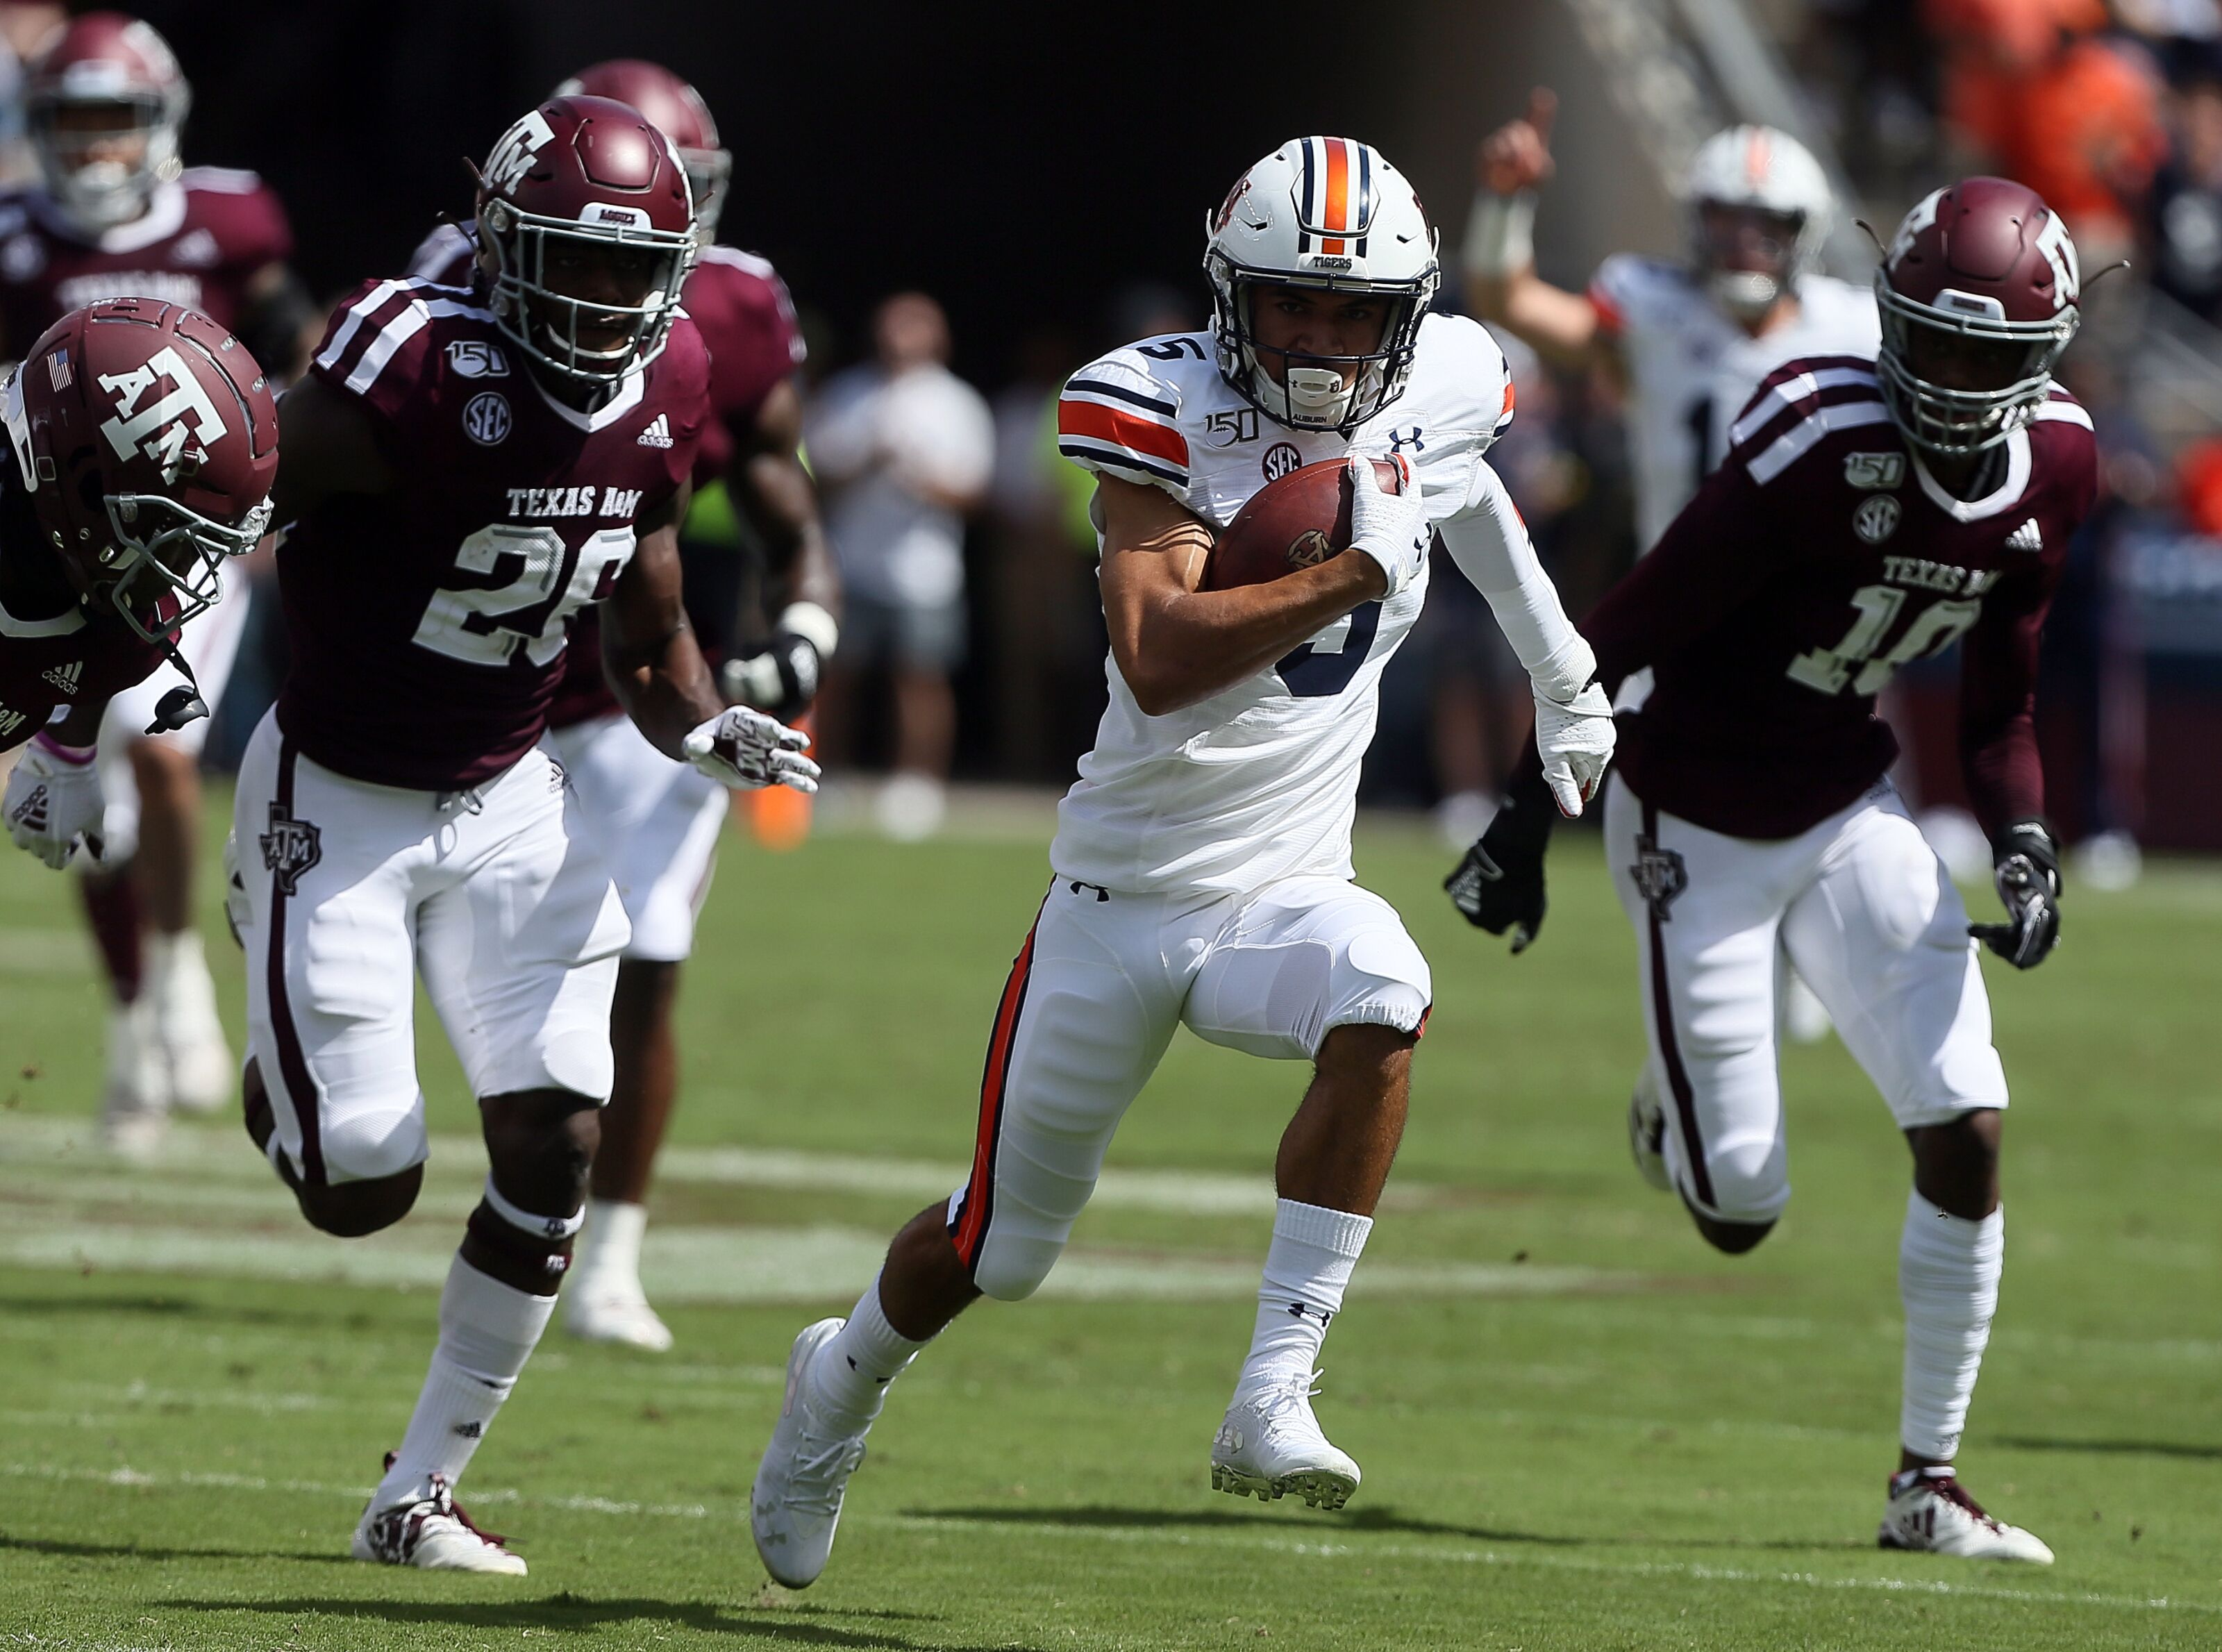 Auburn gigs Texas A&M to clinch third place in SEC West